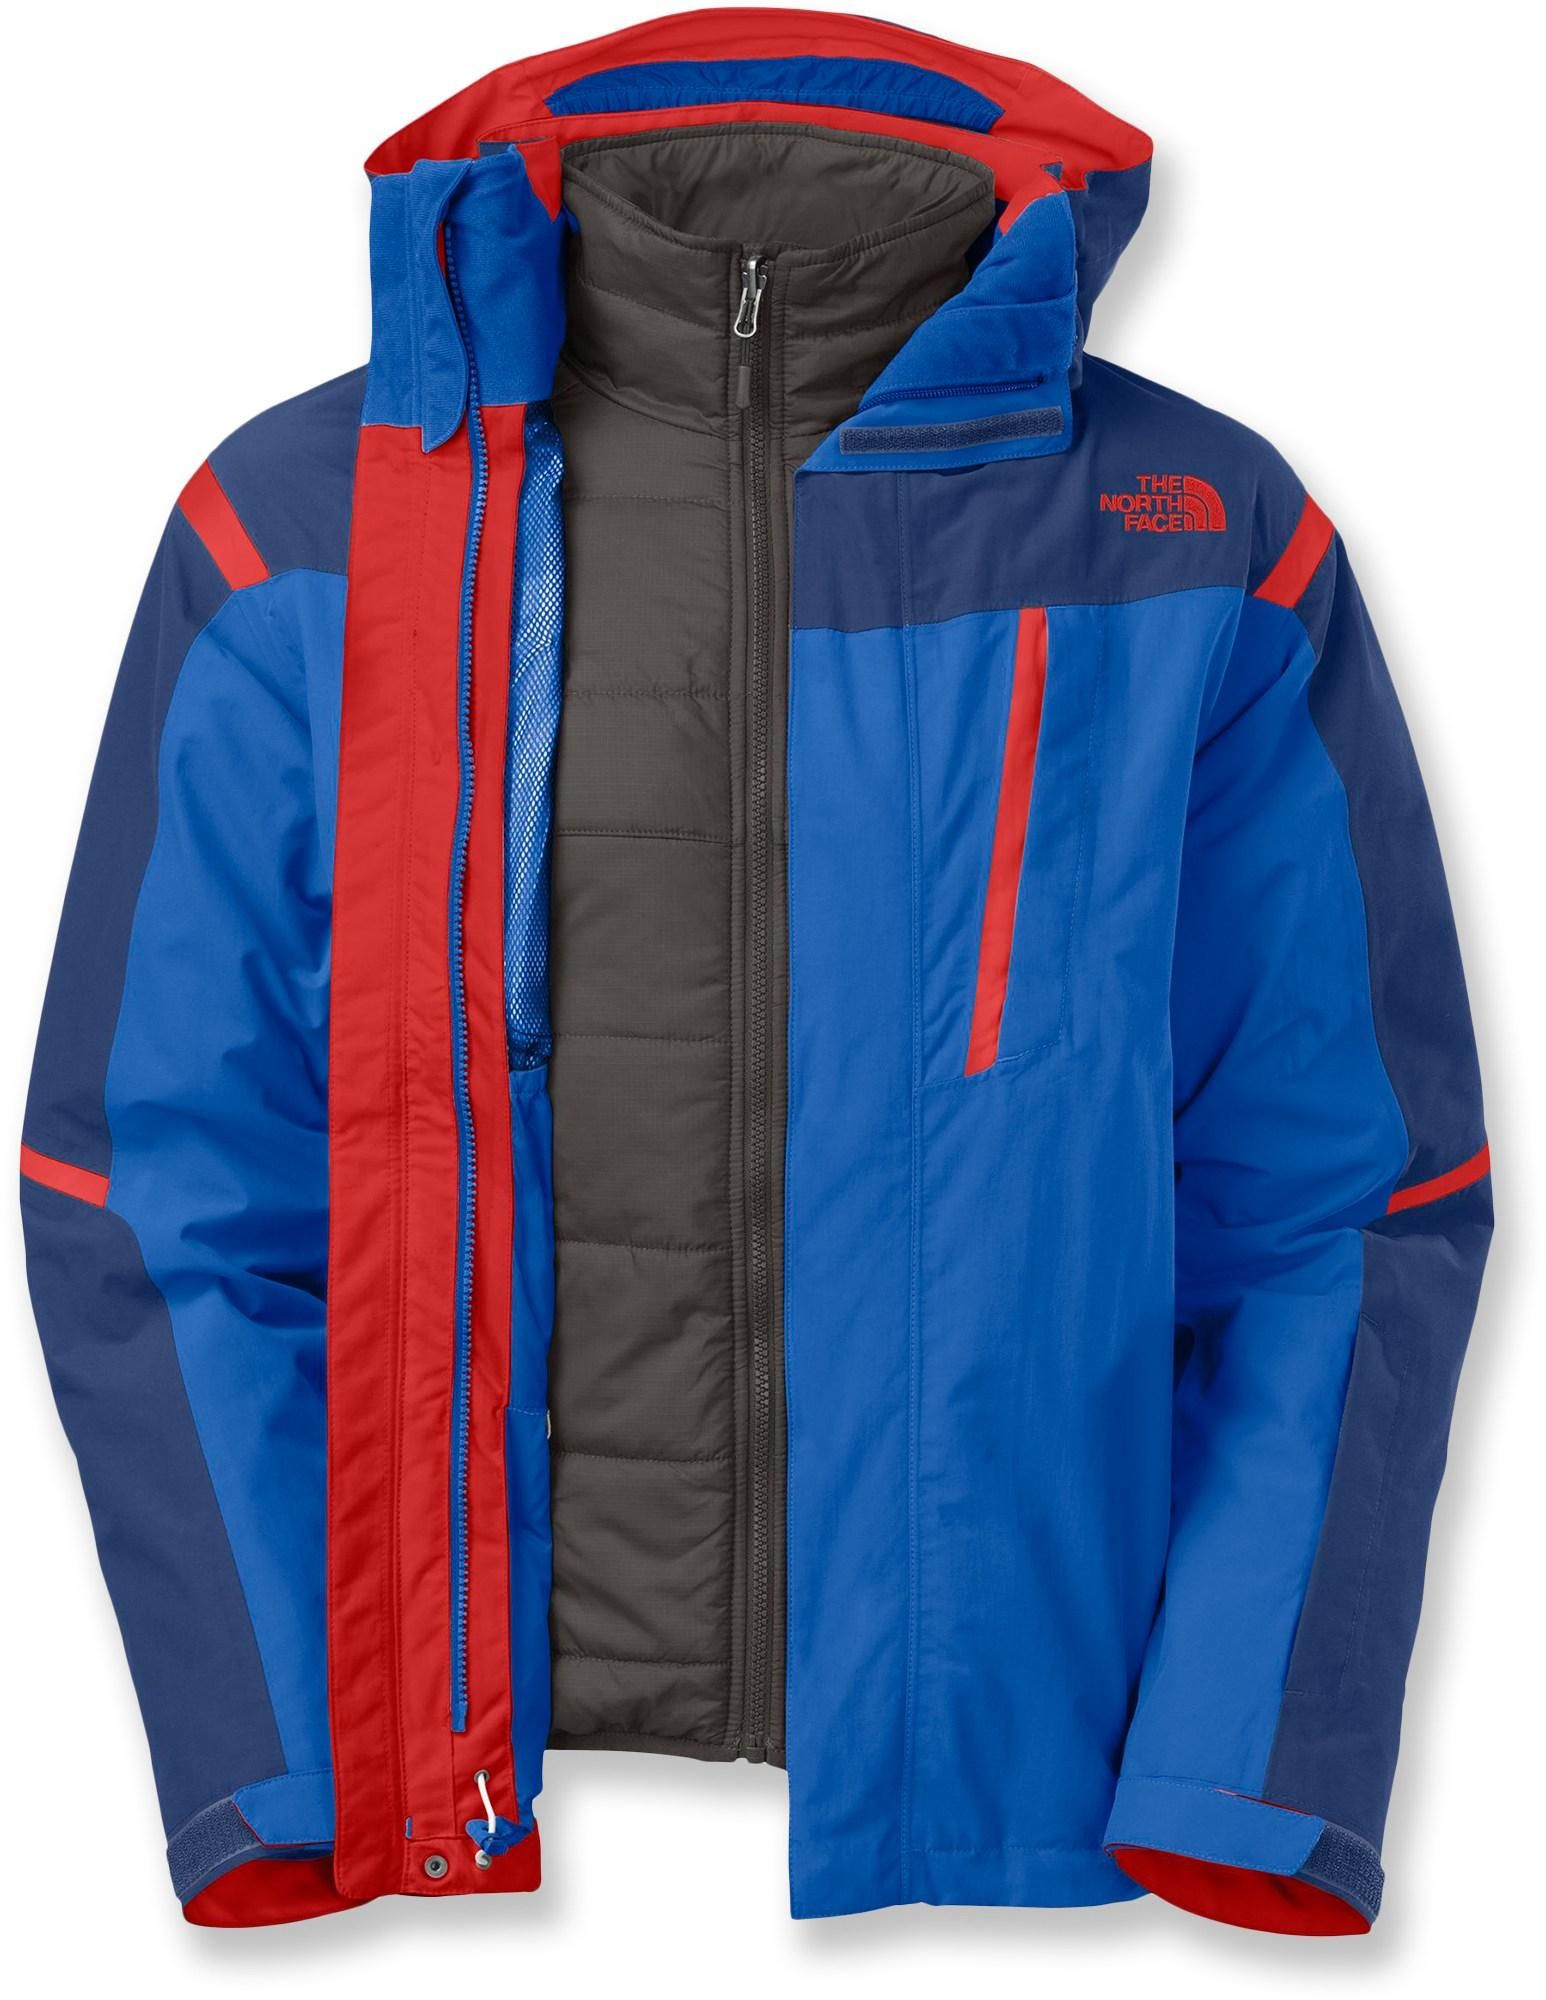 The North Face Vortex Triclimate 3 In 1 Insulated Jacket Men S Rei Co Op Triclimate Jacket Sports Fashion Men Jackets [ 2000 x 1546 Pixel ]